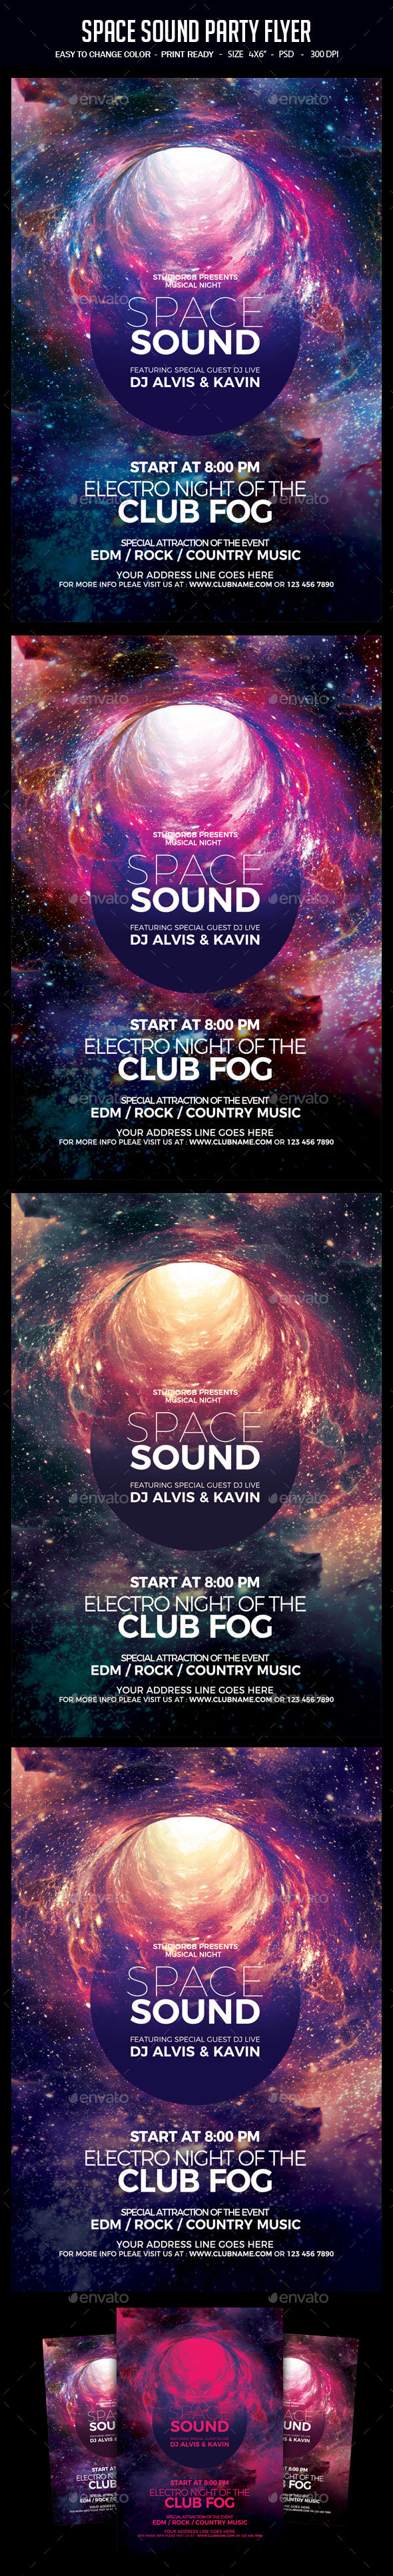 Space Sound Party Flyer - Clubs & Parties Events